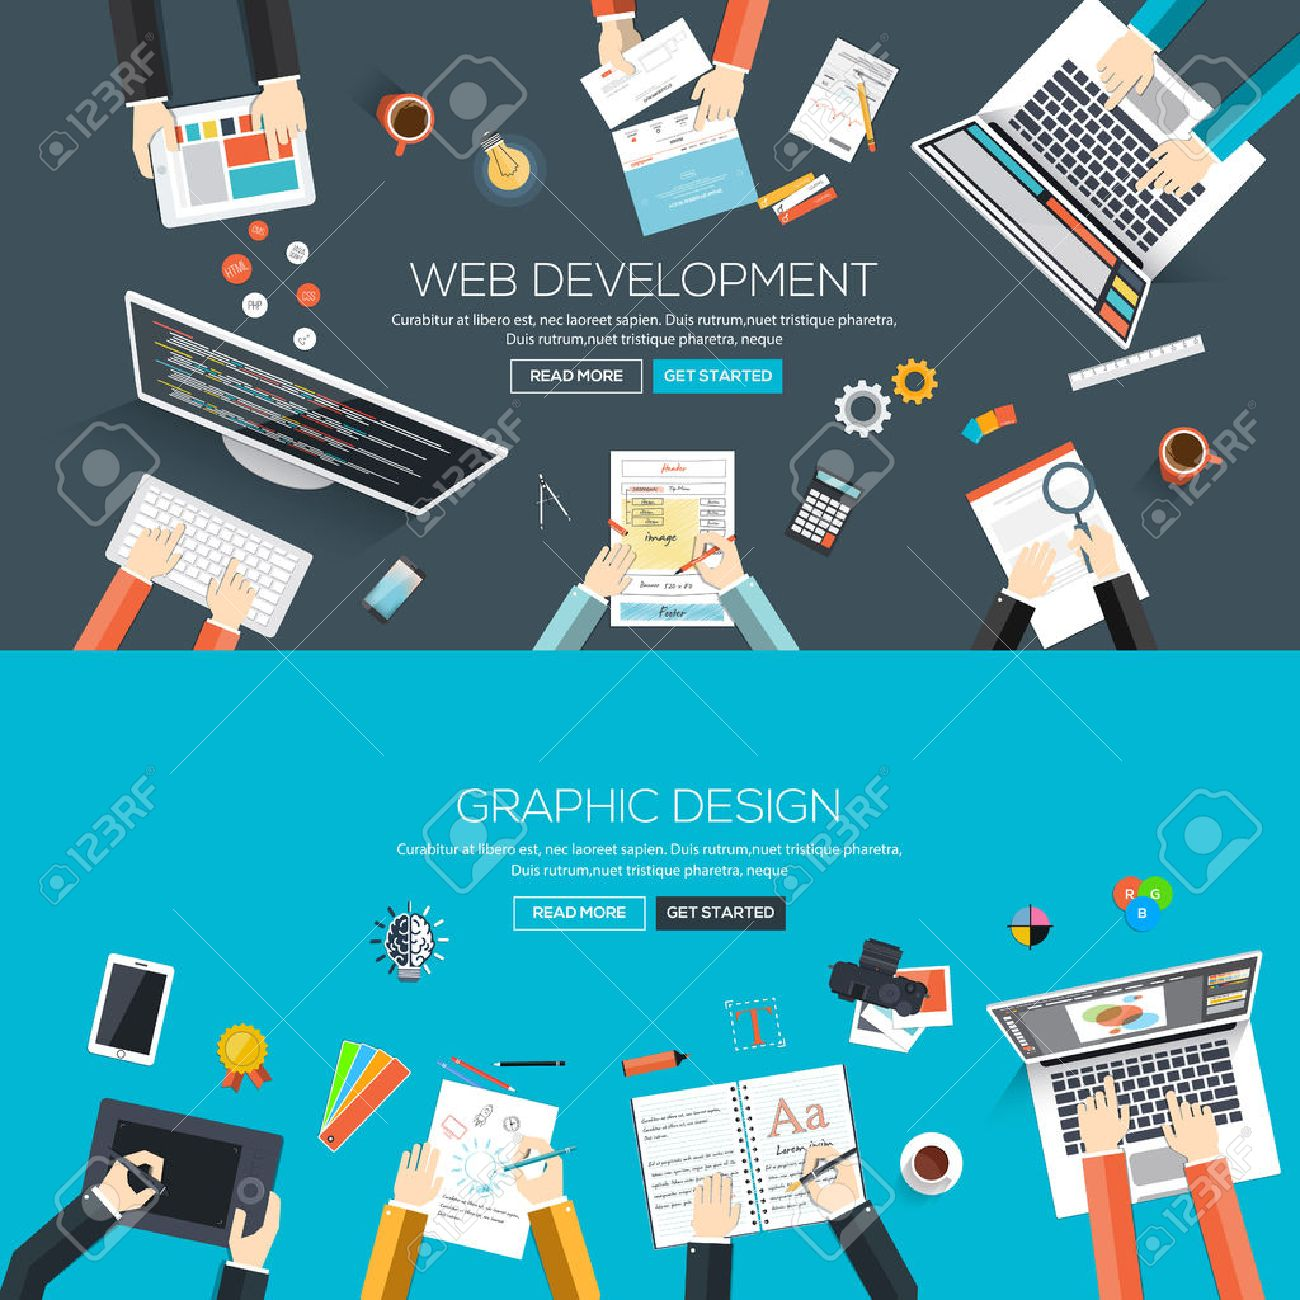 Flat Designed Banners For Web Development And Graphic Design Royalty Free Cliparts Vectors And Stock Illustration Image 38572979